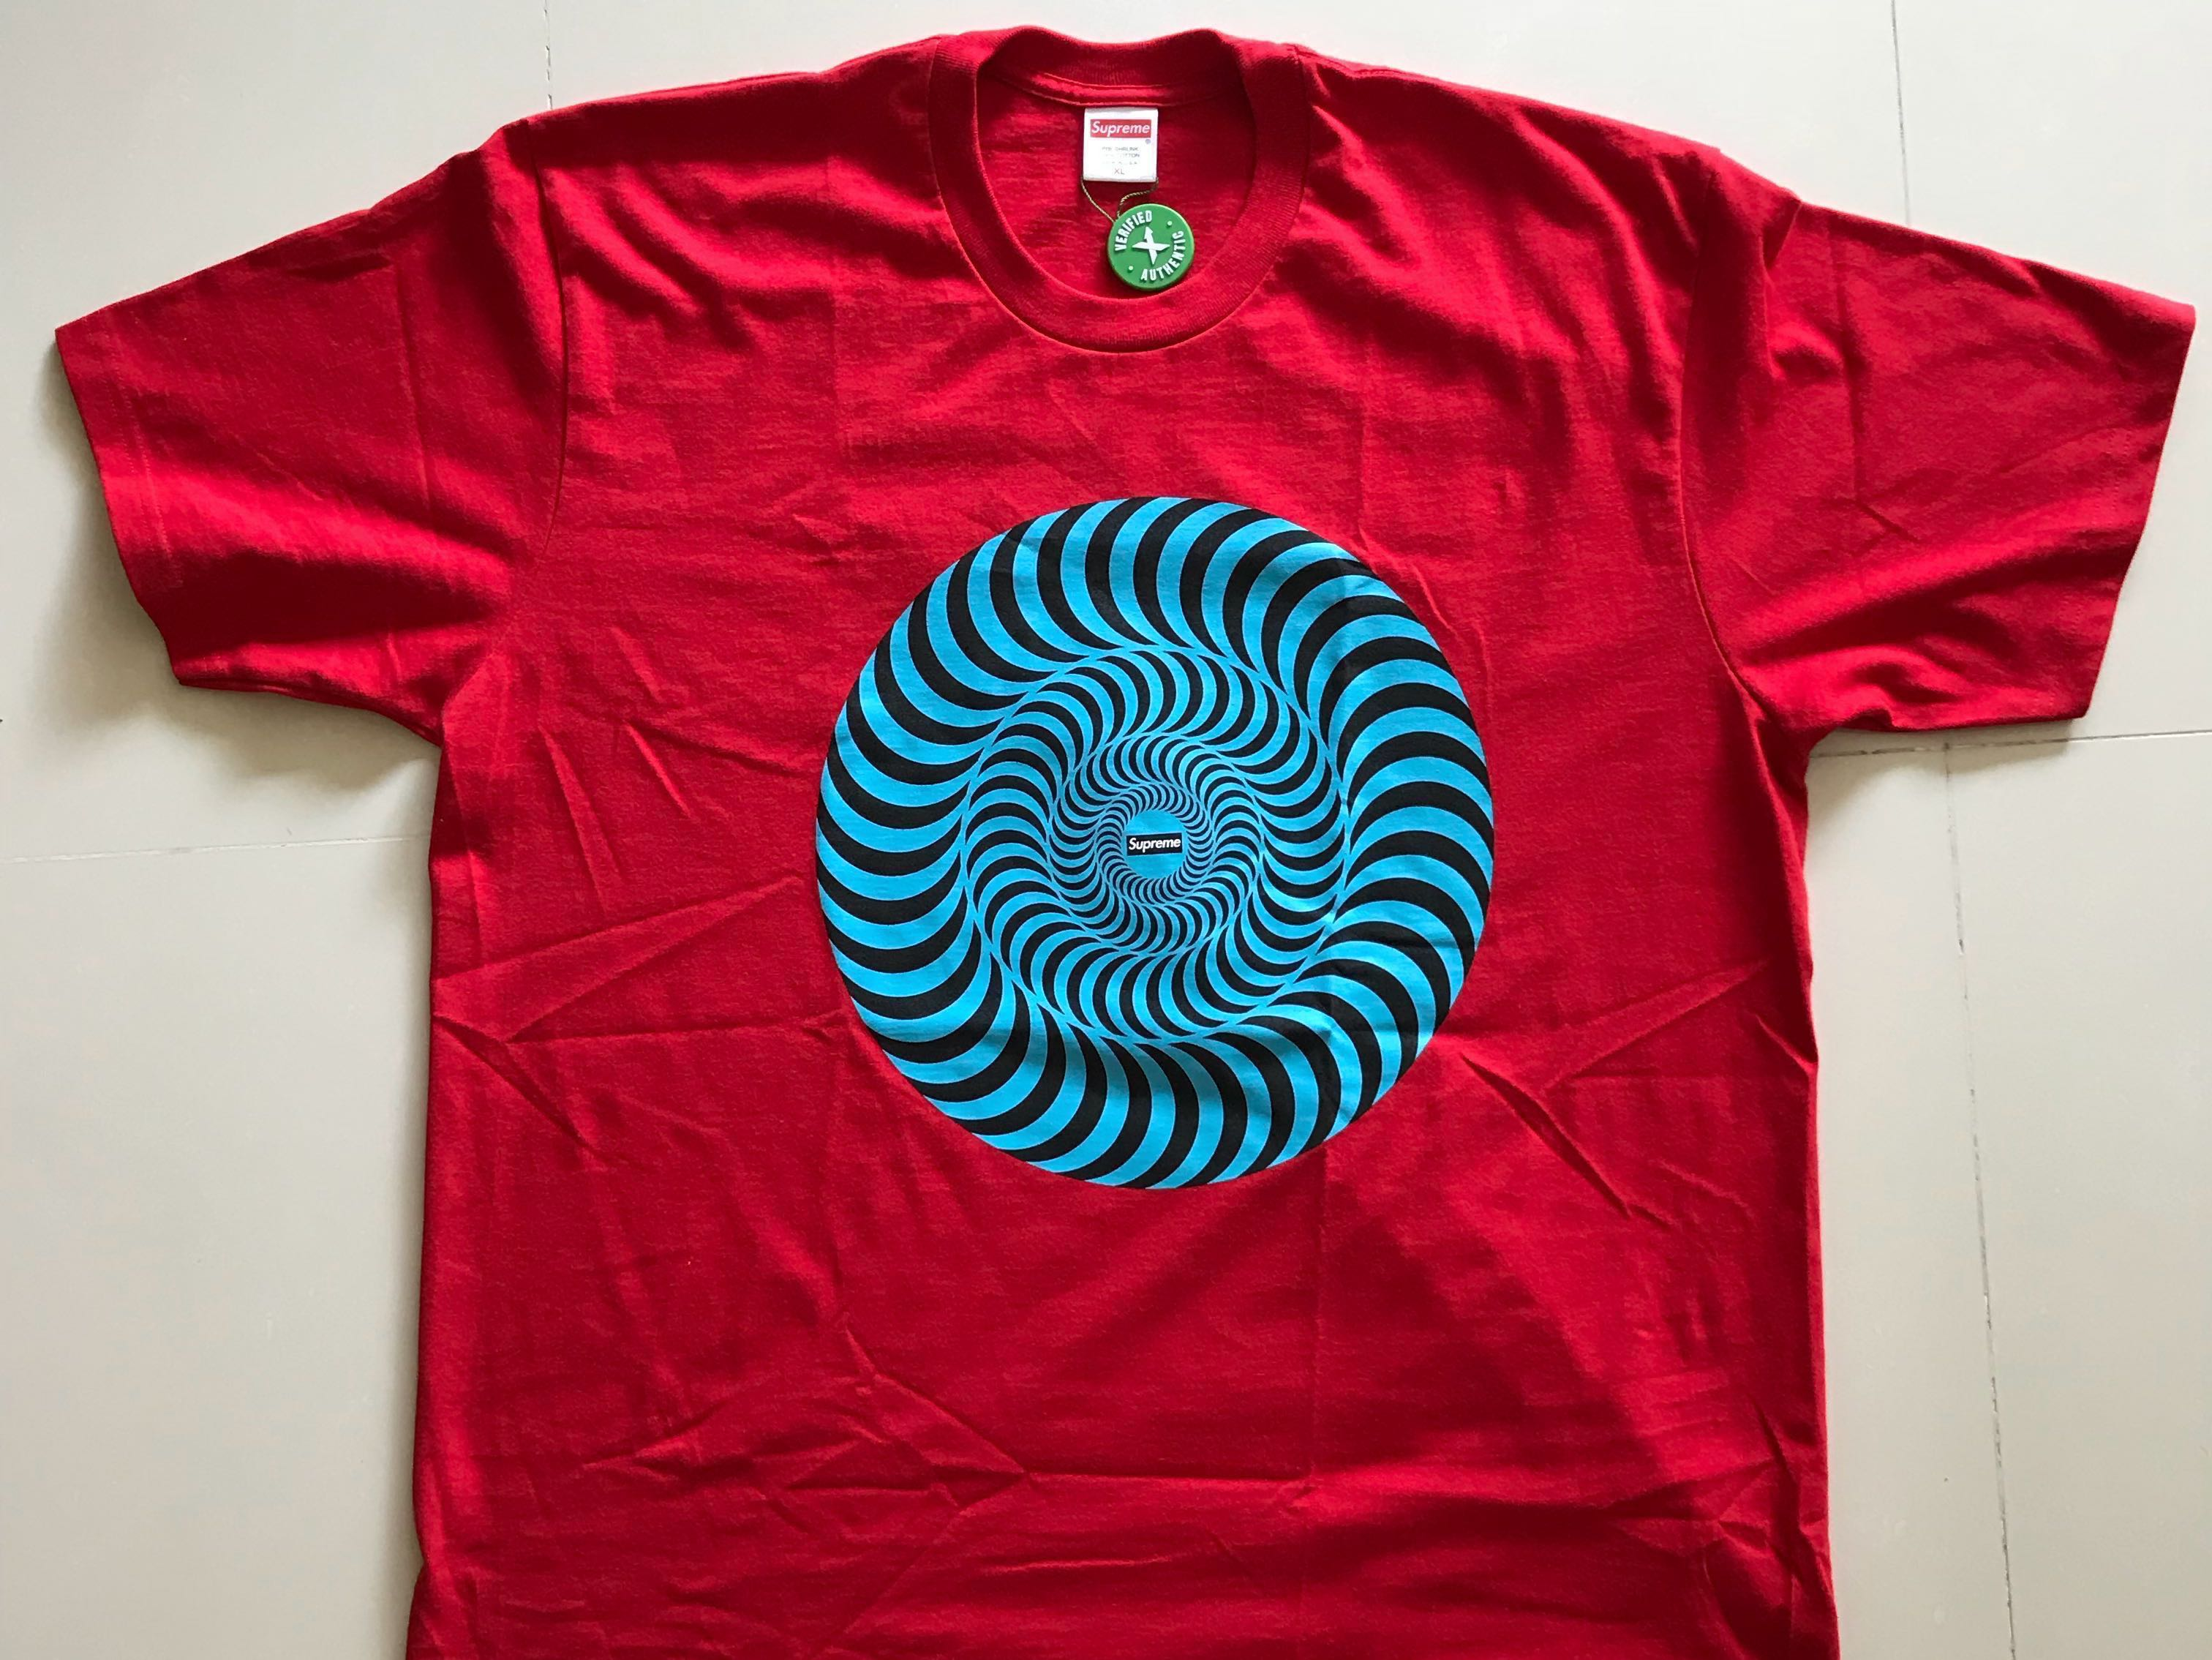 a4aa45e3 Supreme Classic Swirl Red Tee XL, Men's Fashion, Clothes, Tops on ...